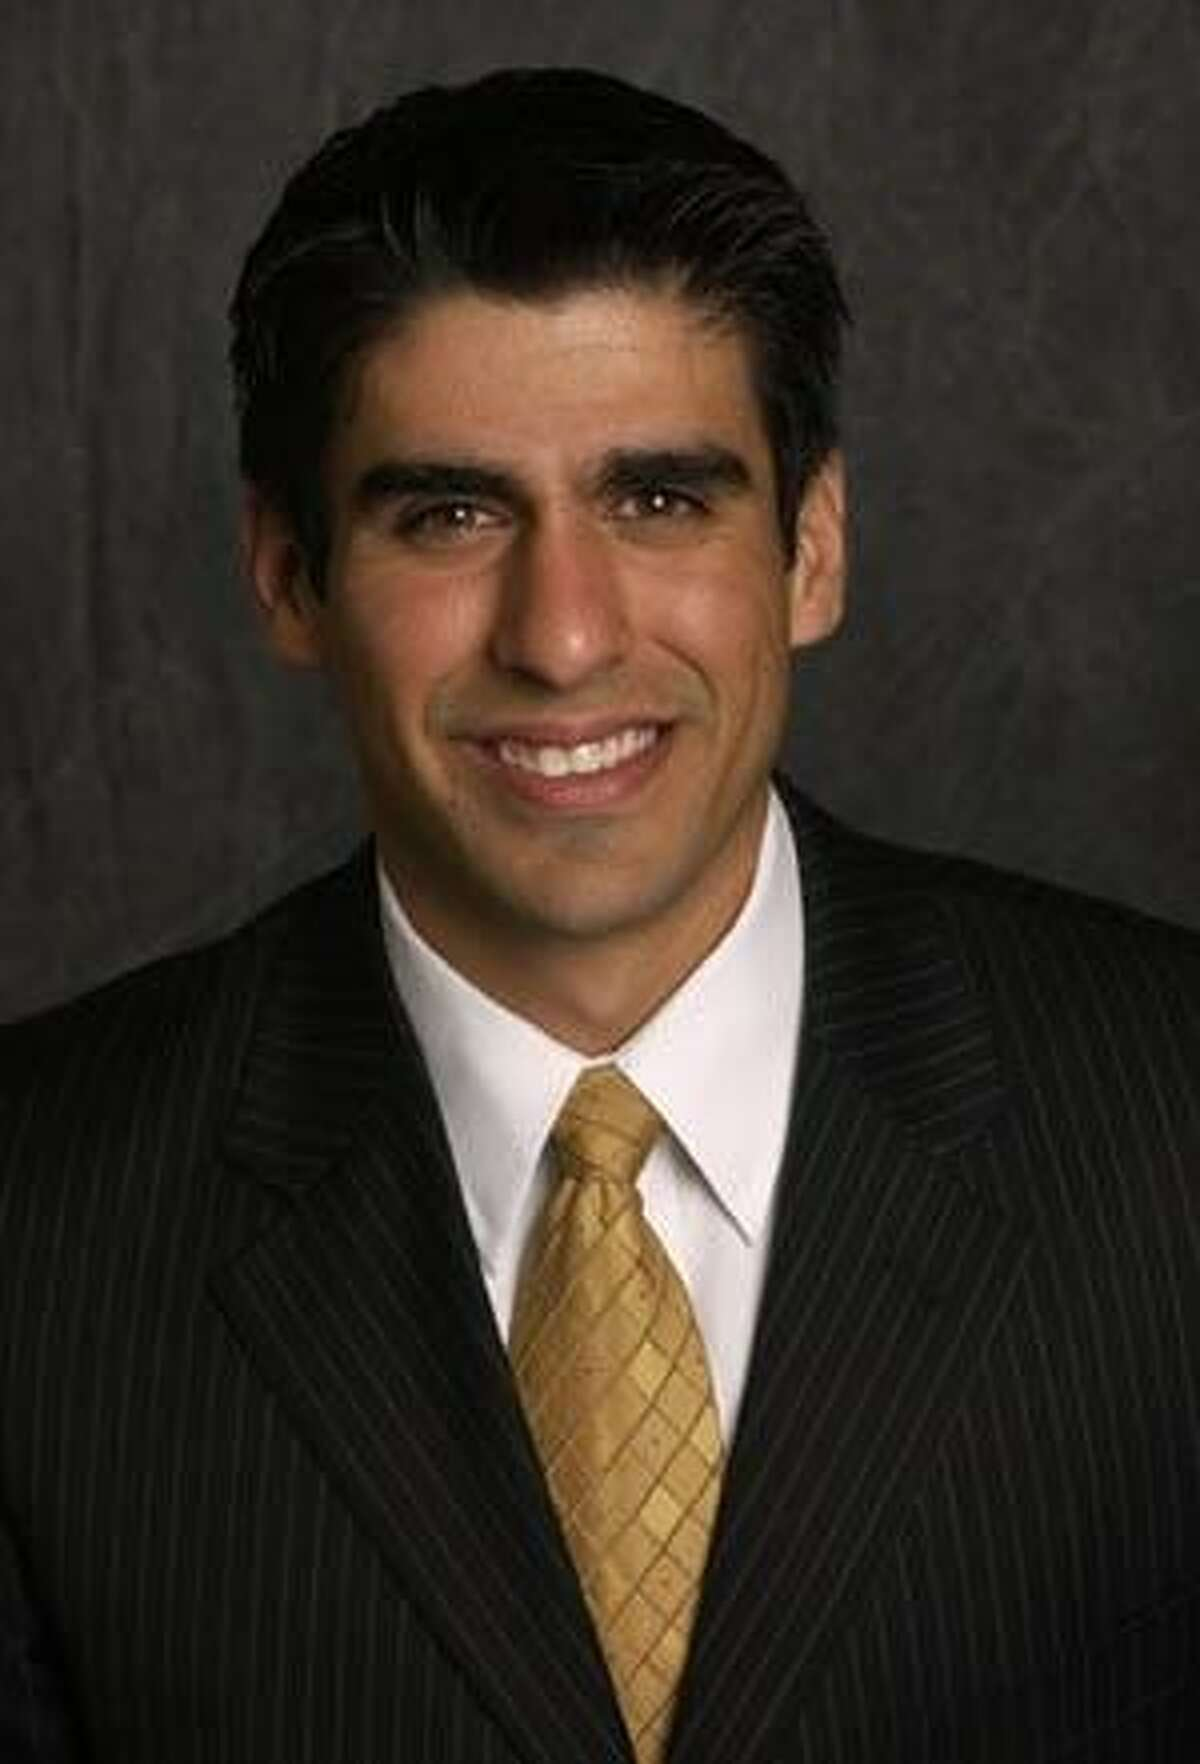 State Rep. Eddie Lucio III is pictured.